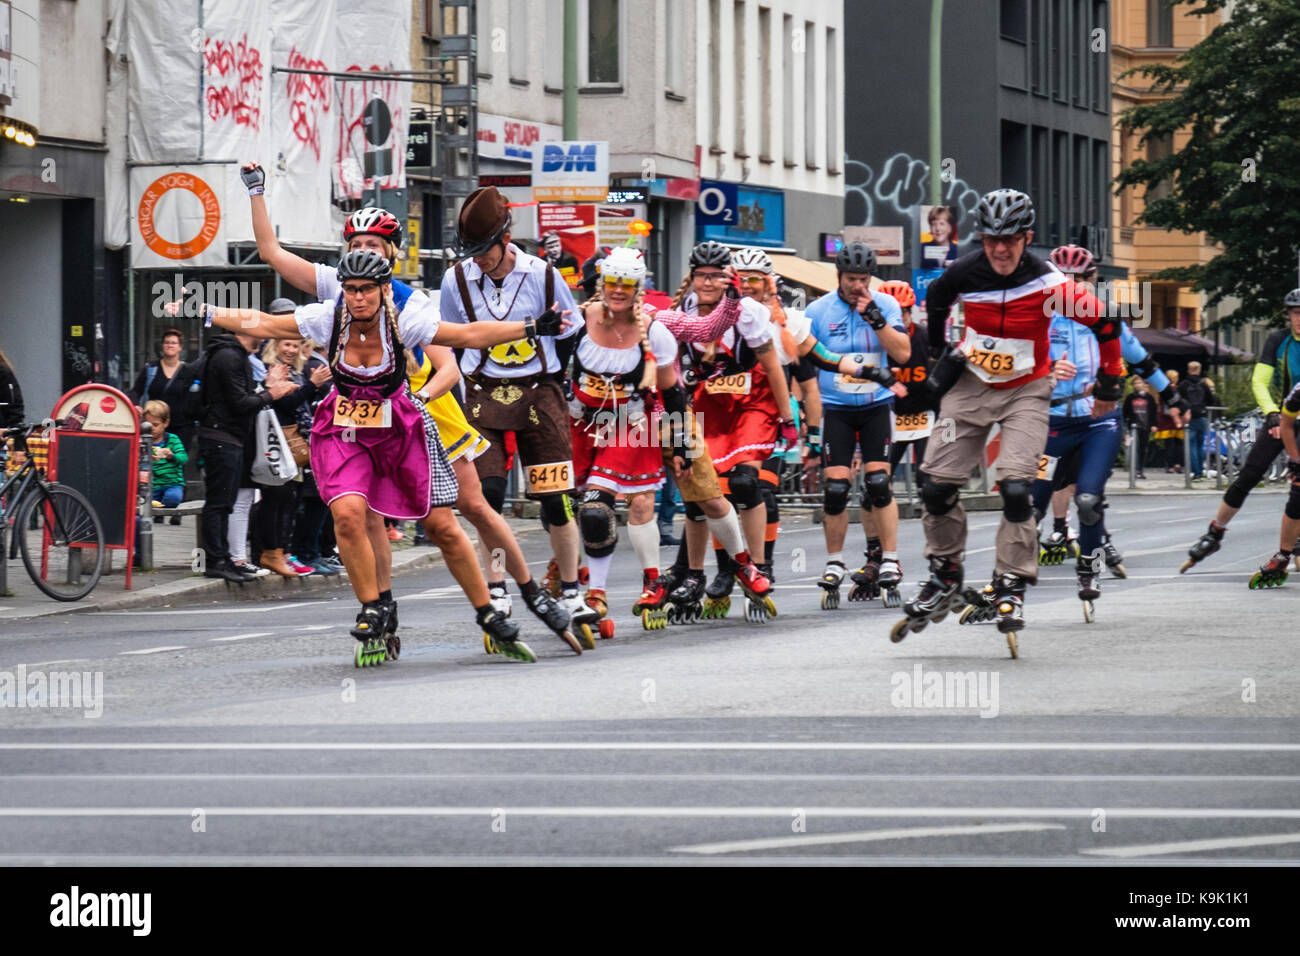 Berlin Germany. 23 September 2017, Annual In Line Skating Marathon. In line skaters pass through RosenthalePlatz as they compete in the annual roller skating event. Eden Breitz/Alamy Live News Stock Photo